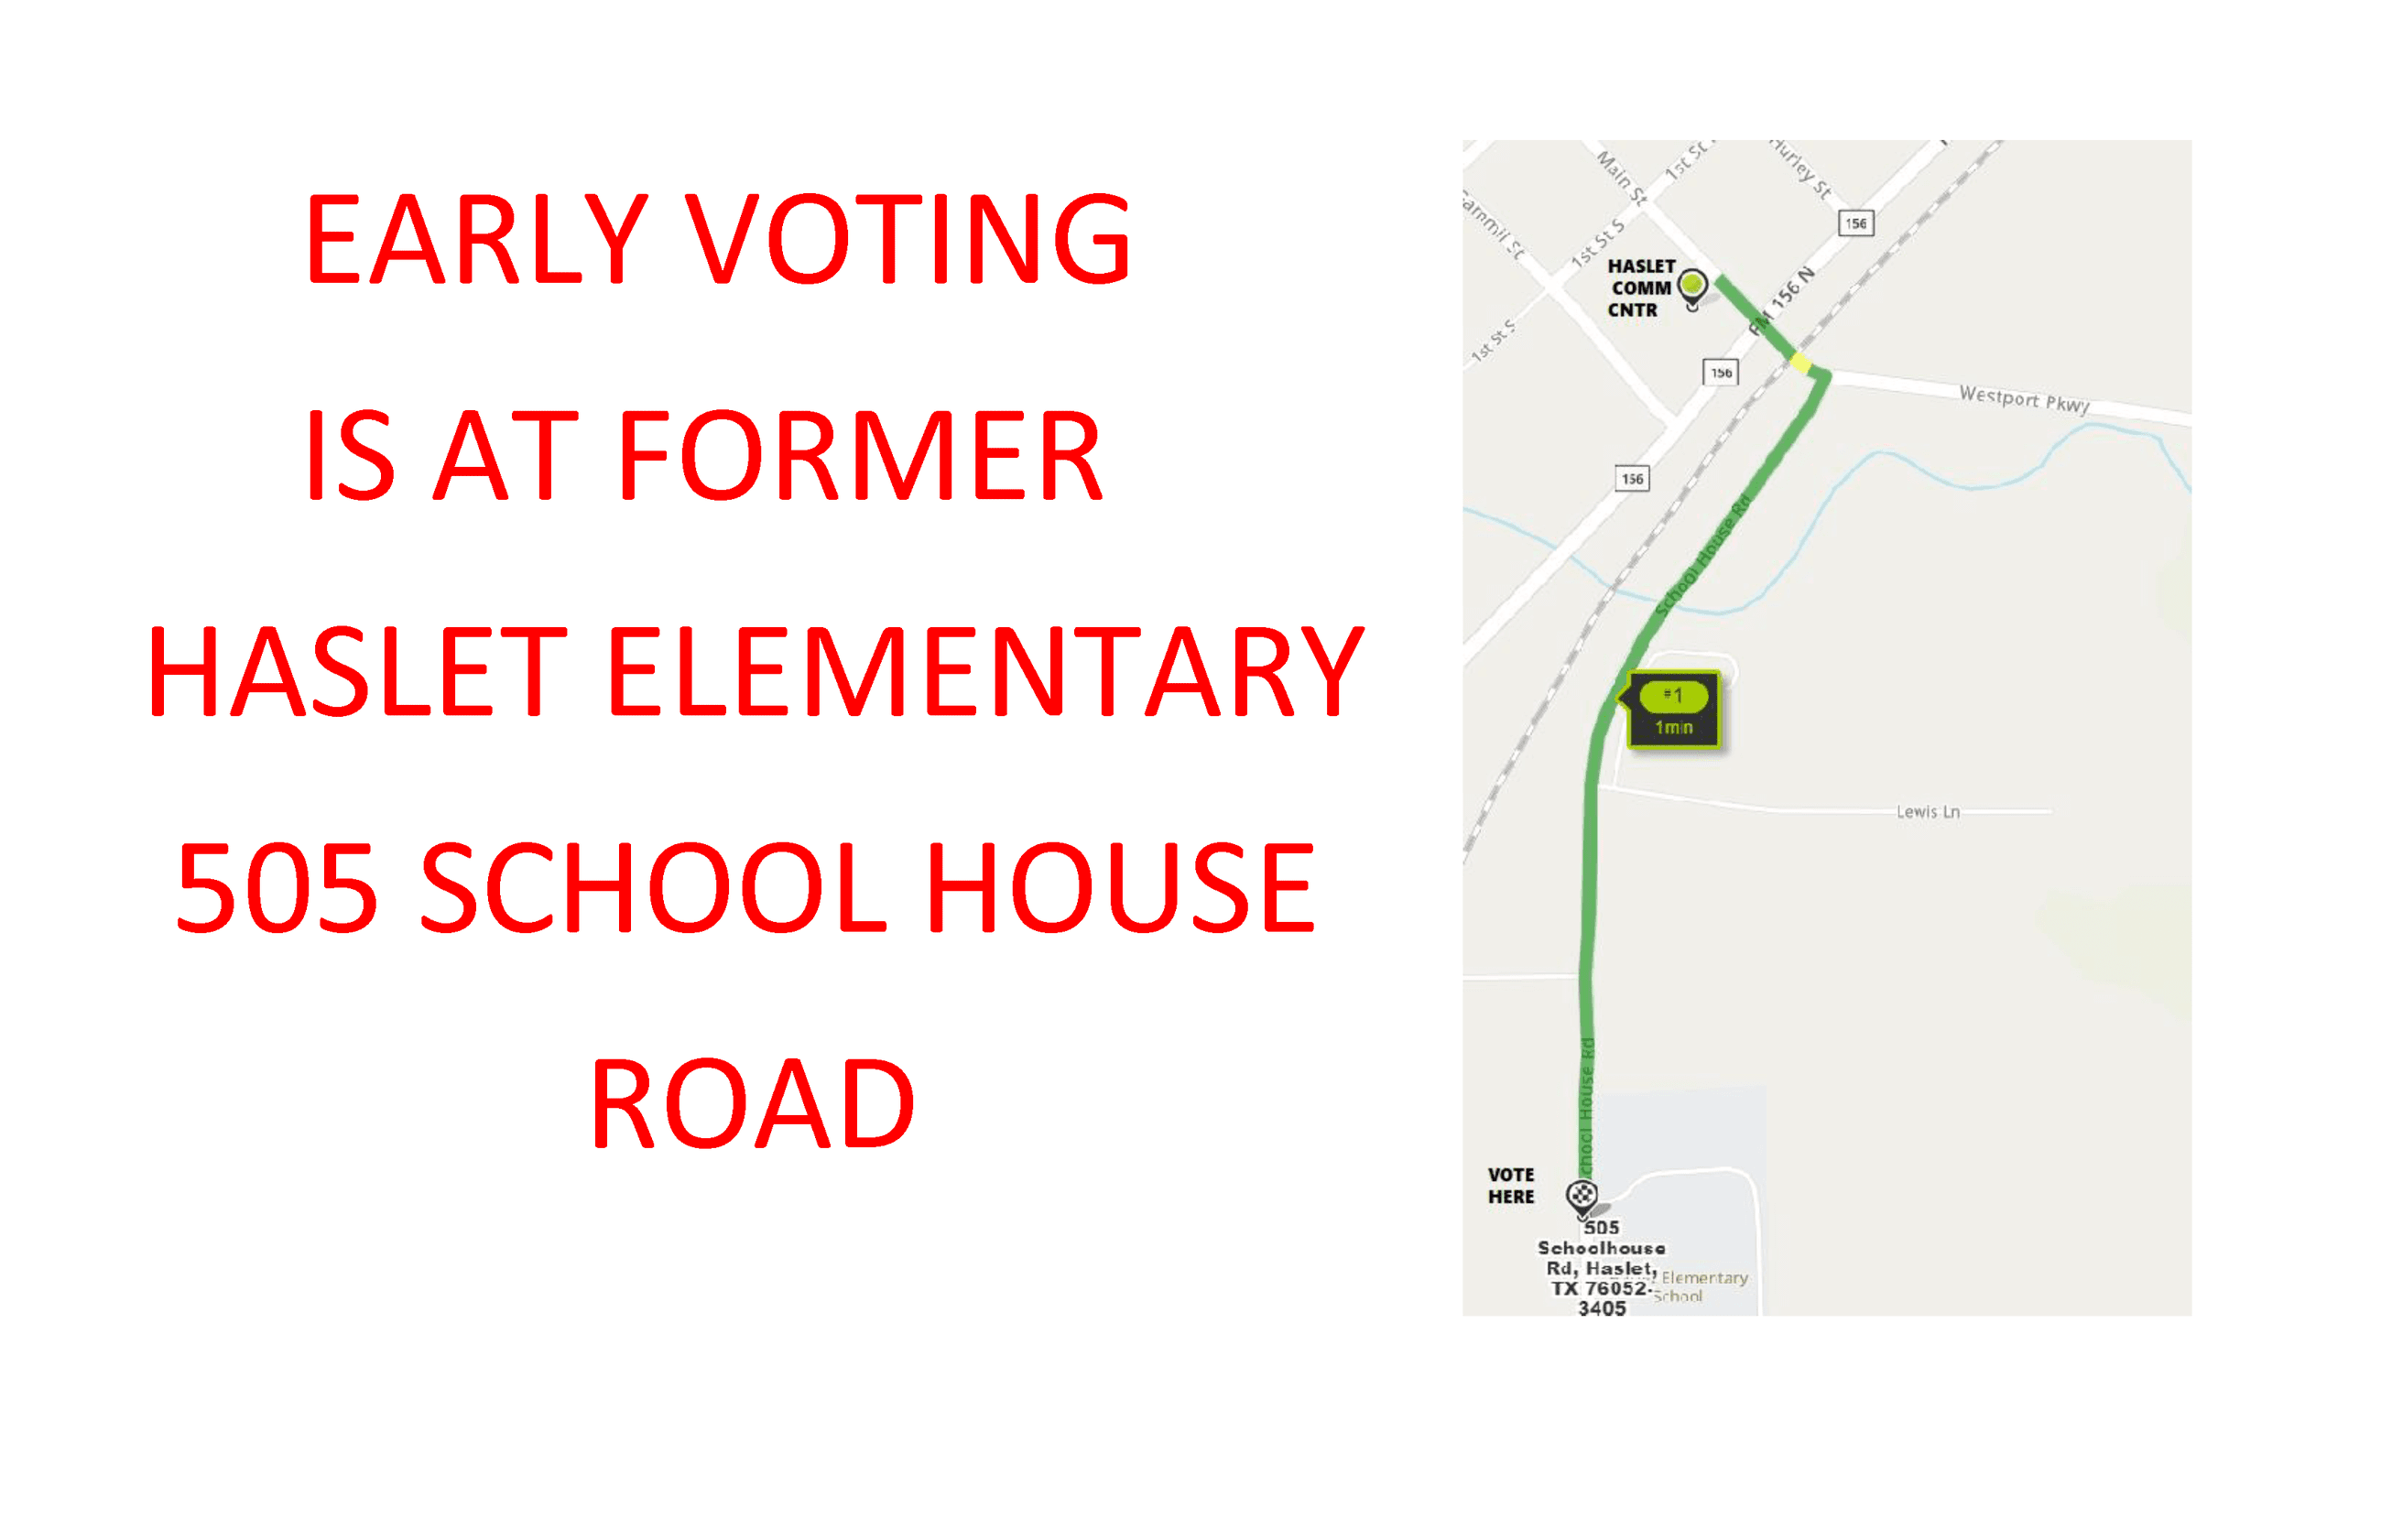 EARLY VOTING LOCATION 2020